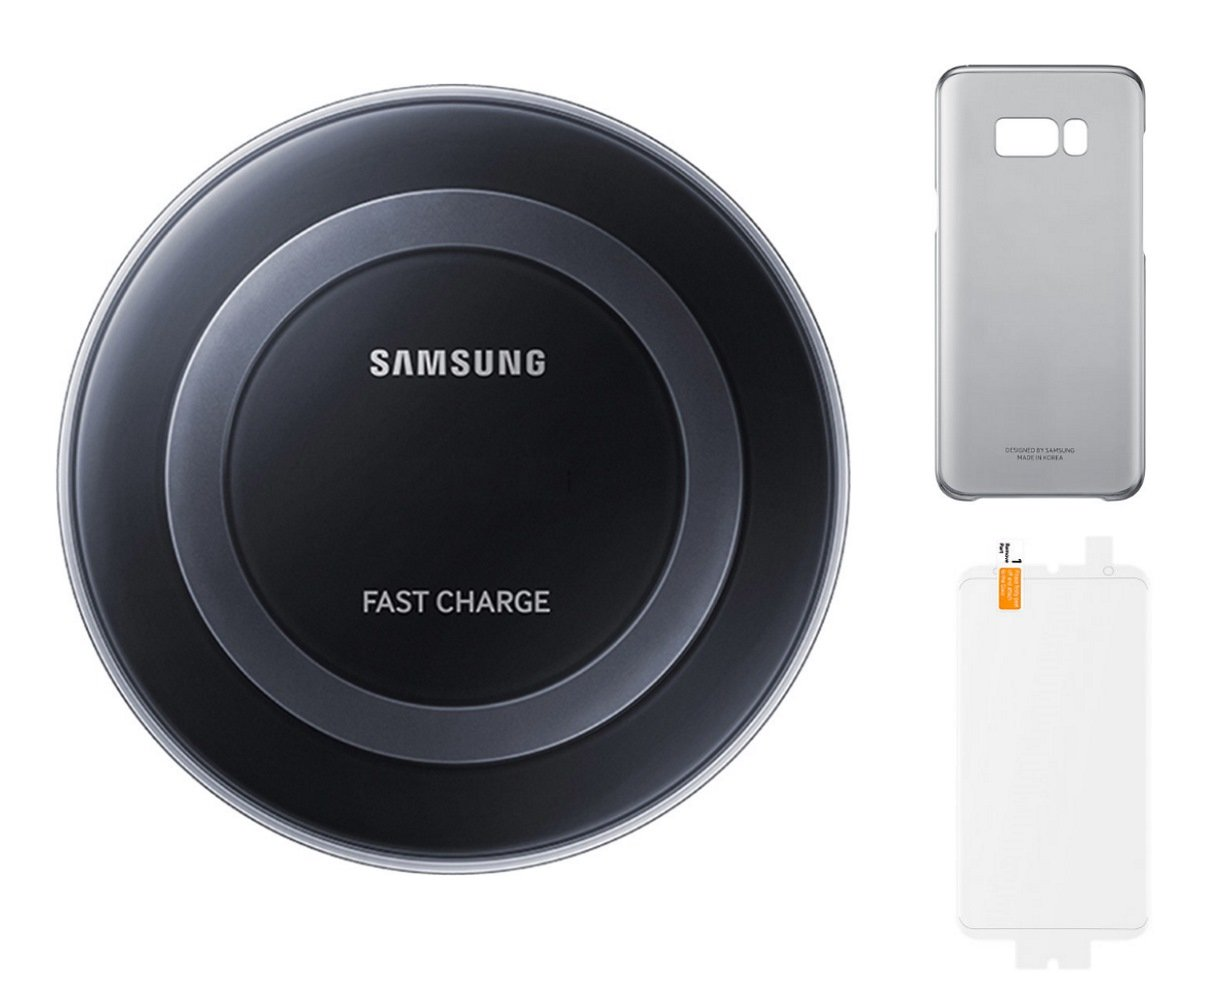 Samsung Galaxy S8+ Essential Kit - Samsung Qi Certified Fast Charger Wireless Pad with Clear Orchid Grey Cover Case and Scratch Proof Screen Protector - Retail Packaging